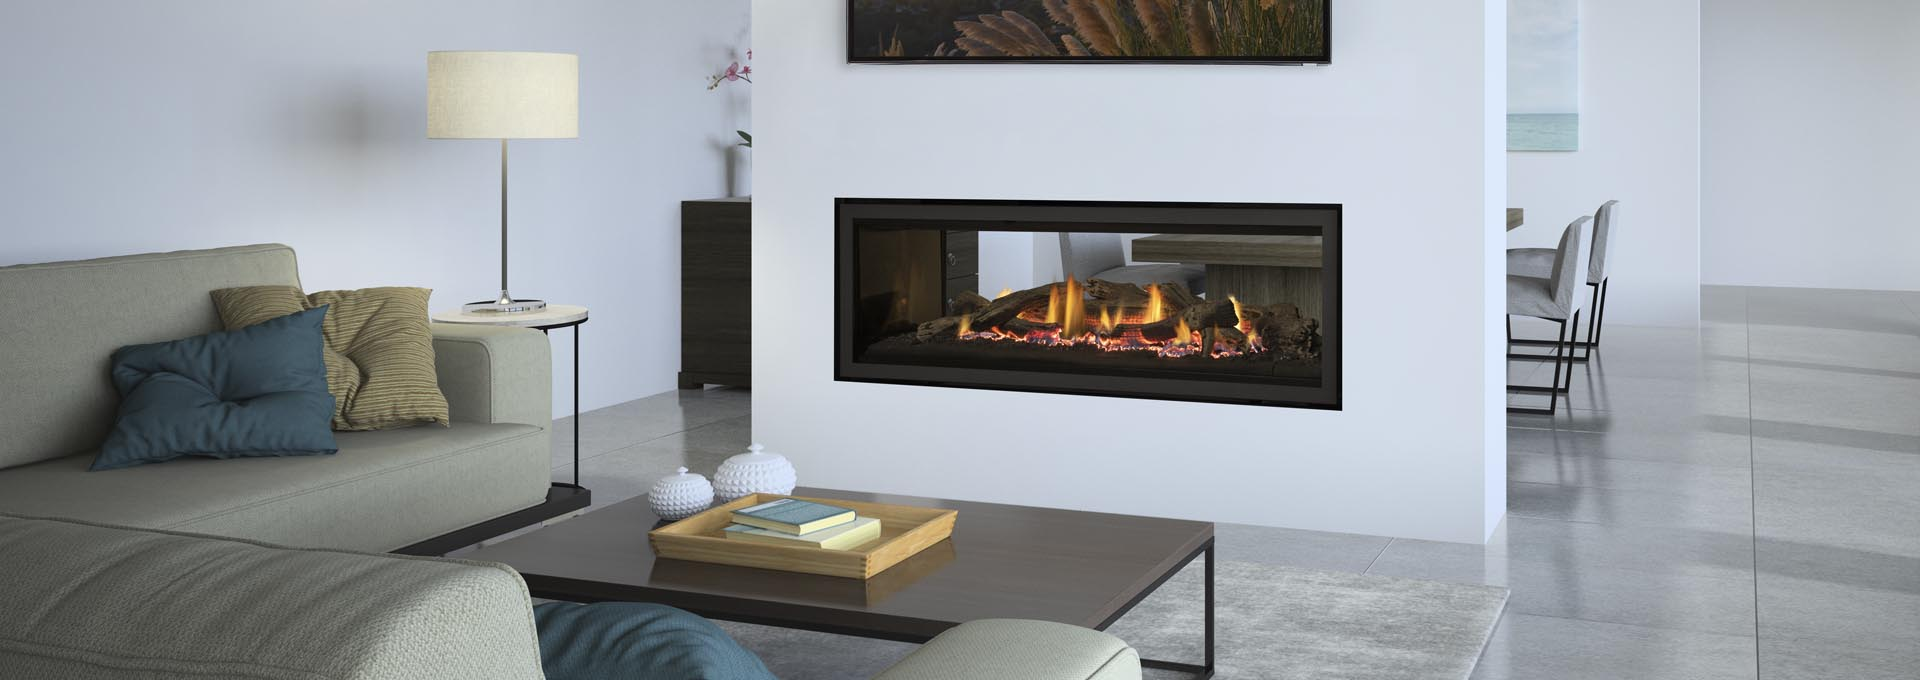 See Through Gas Fireplace Price Part - 21: Perfect For Contemporary Spaces And Open Concept Living Areas.